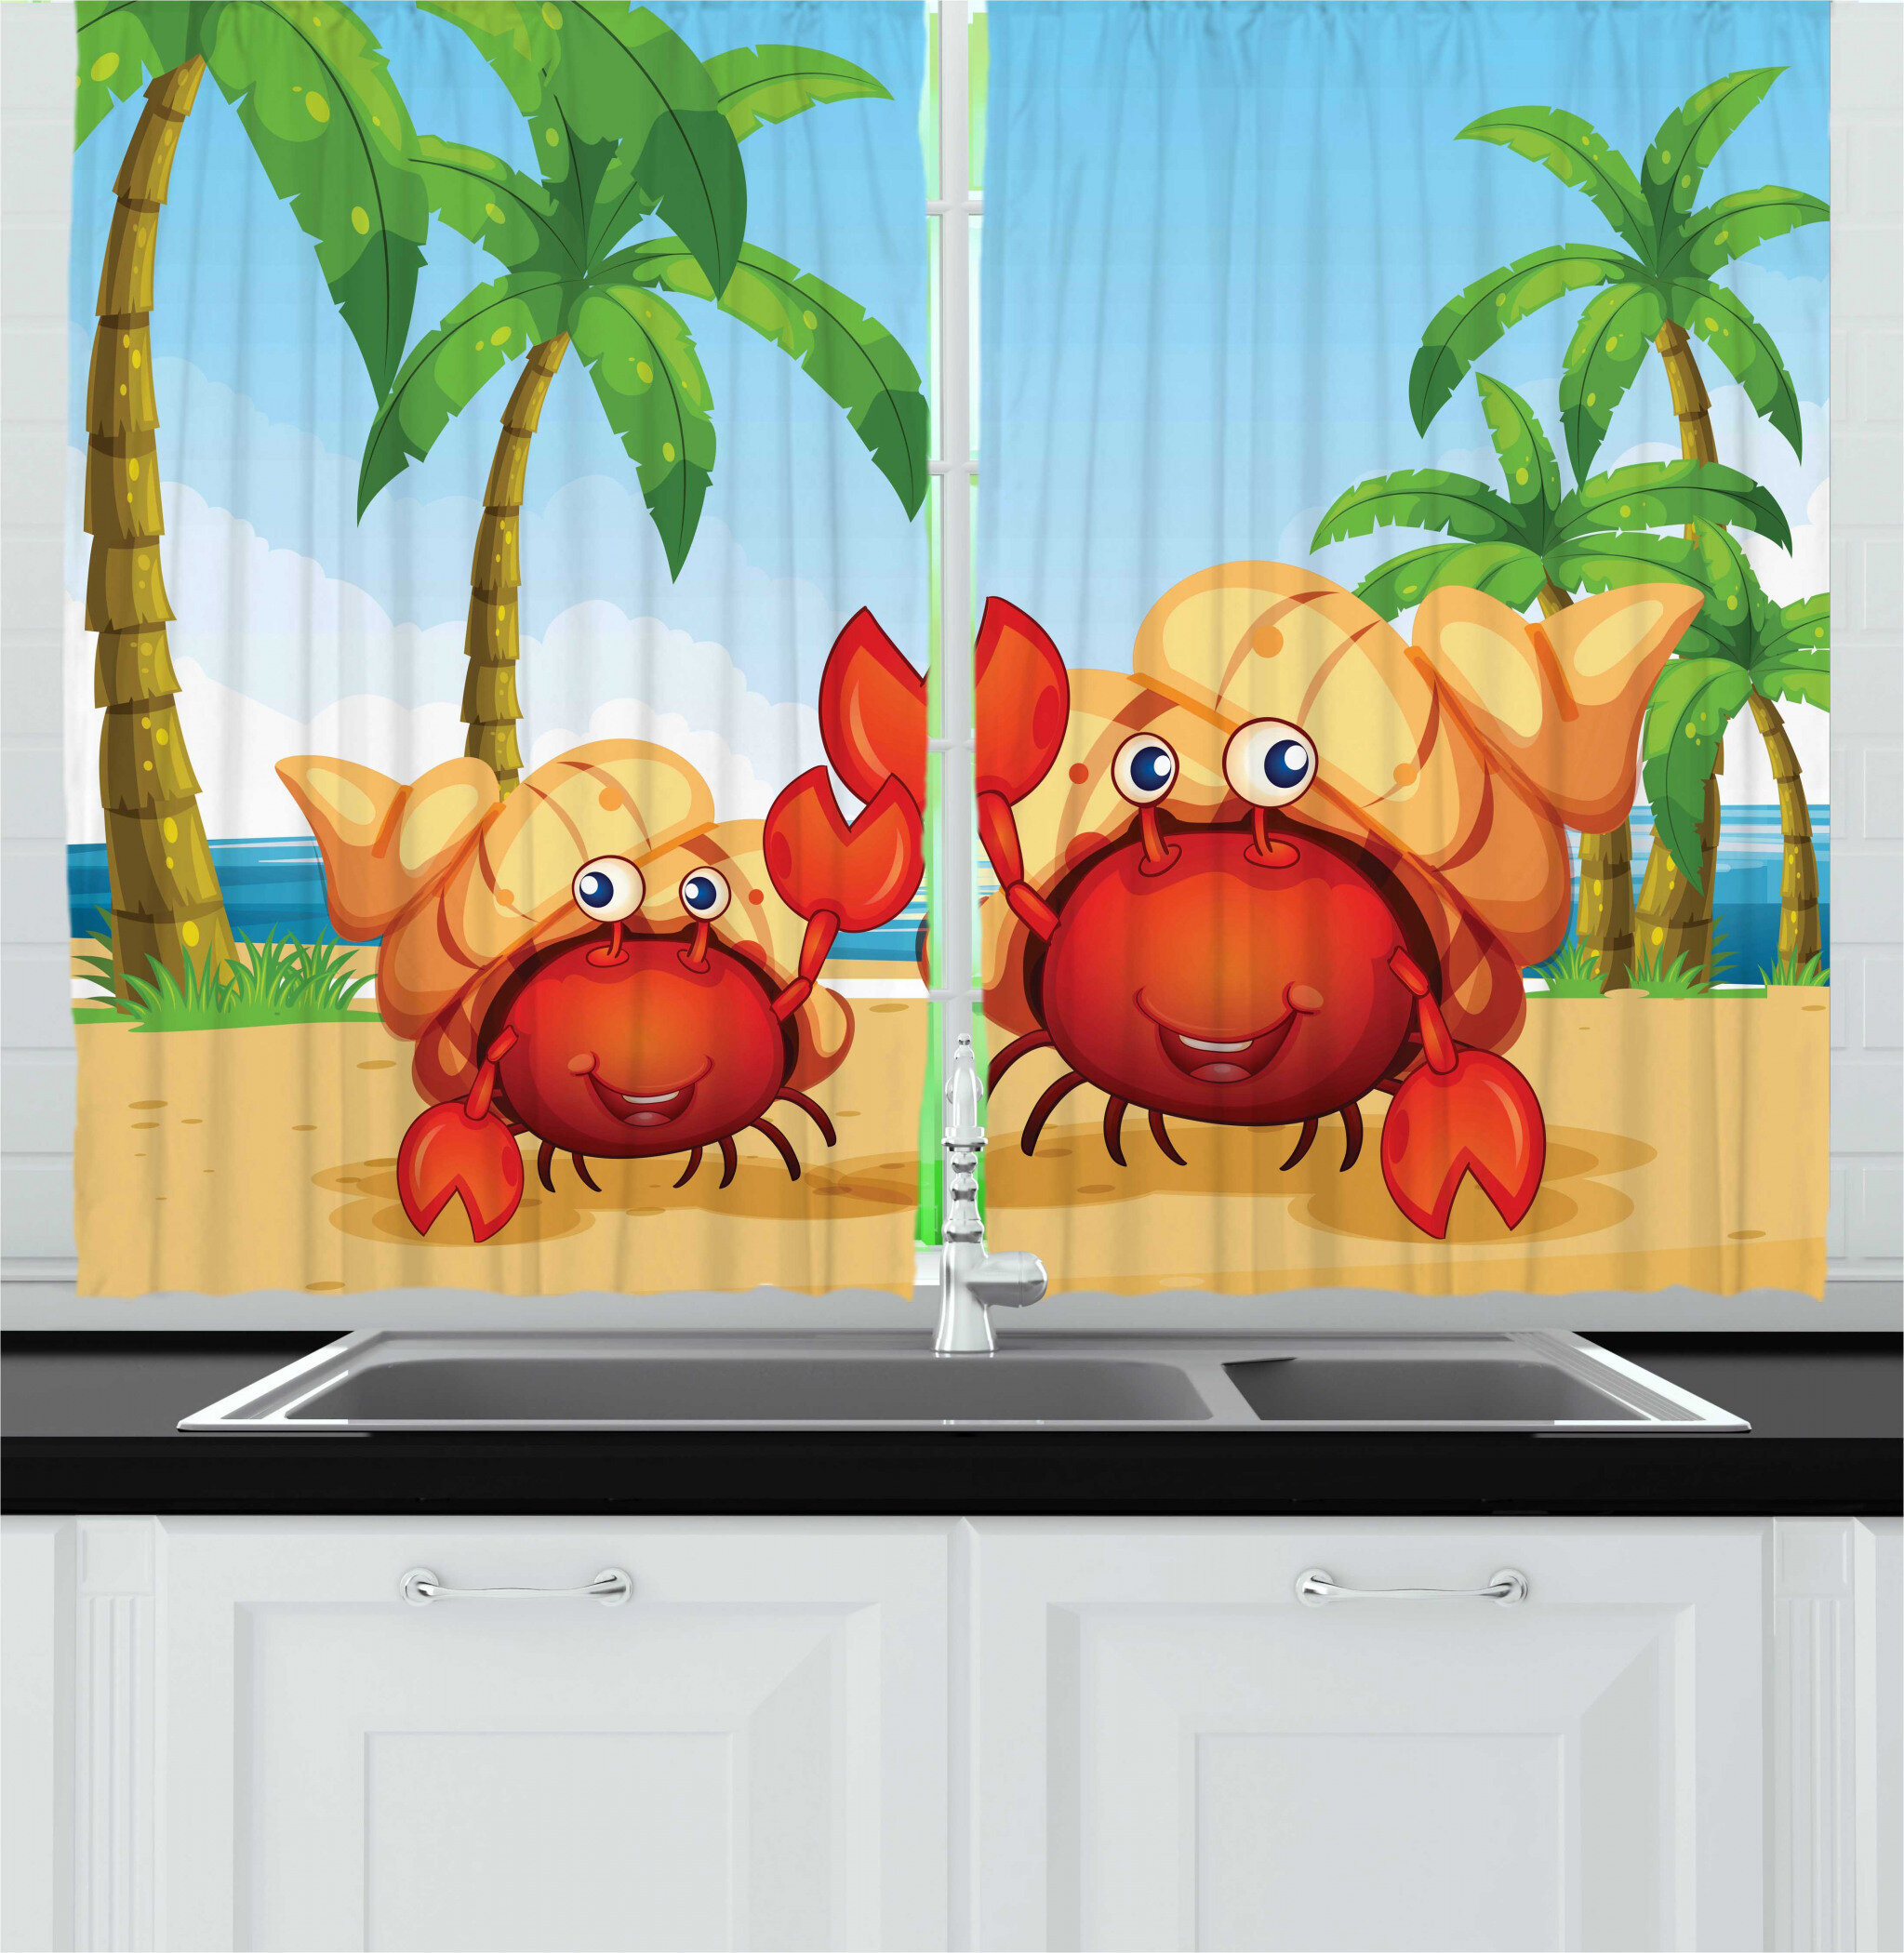 East Urban Home 2 Piece Hermit Crab Smiling Hermit Crabs With A Tropical Setting On The Background Kitchen Curtains Set Wayfair